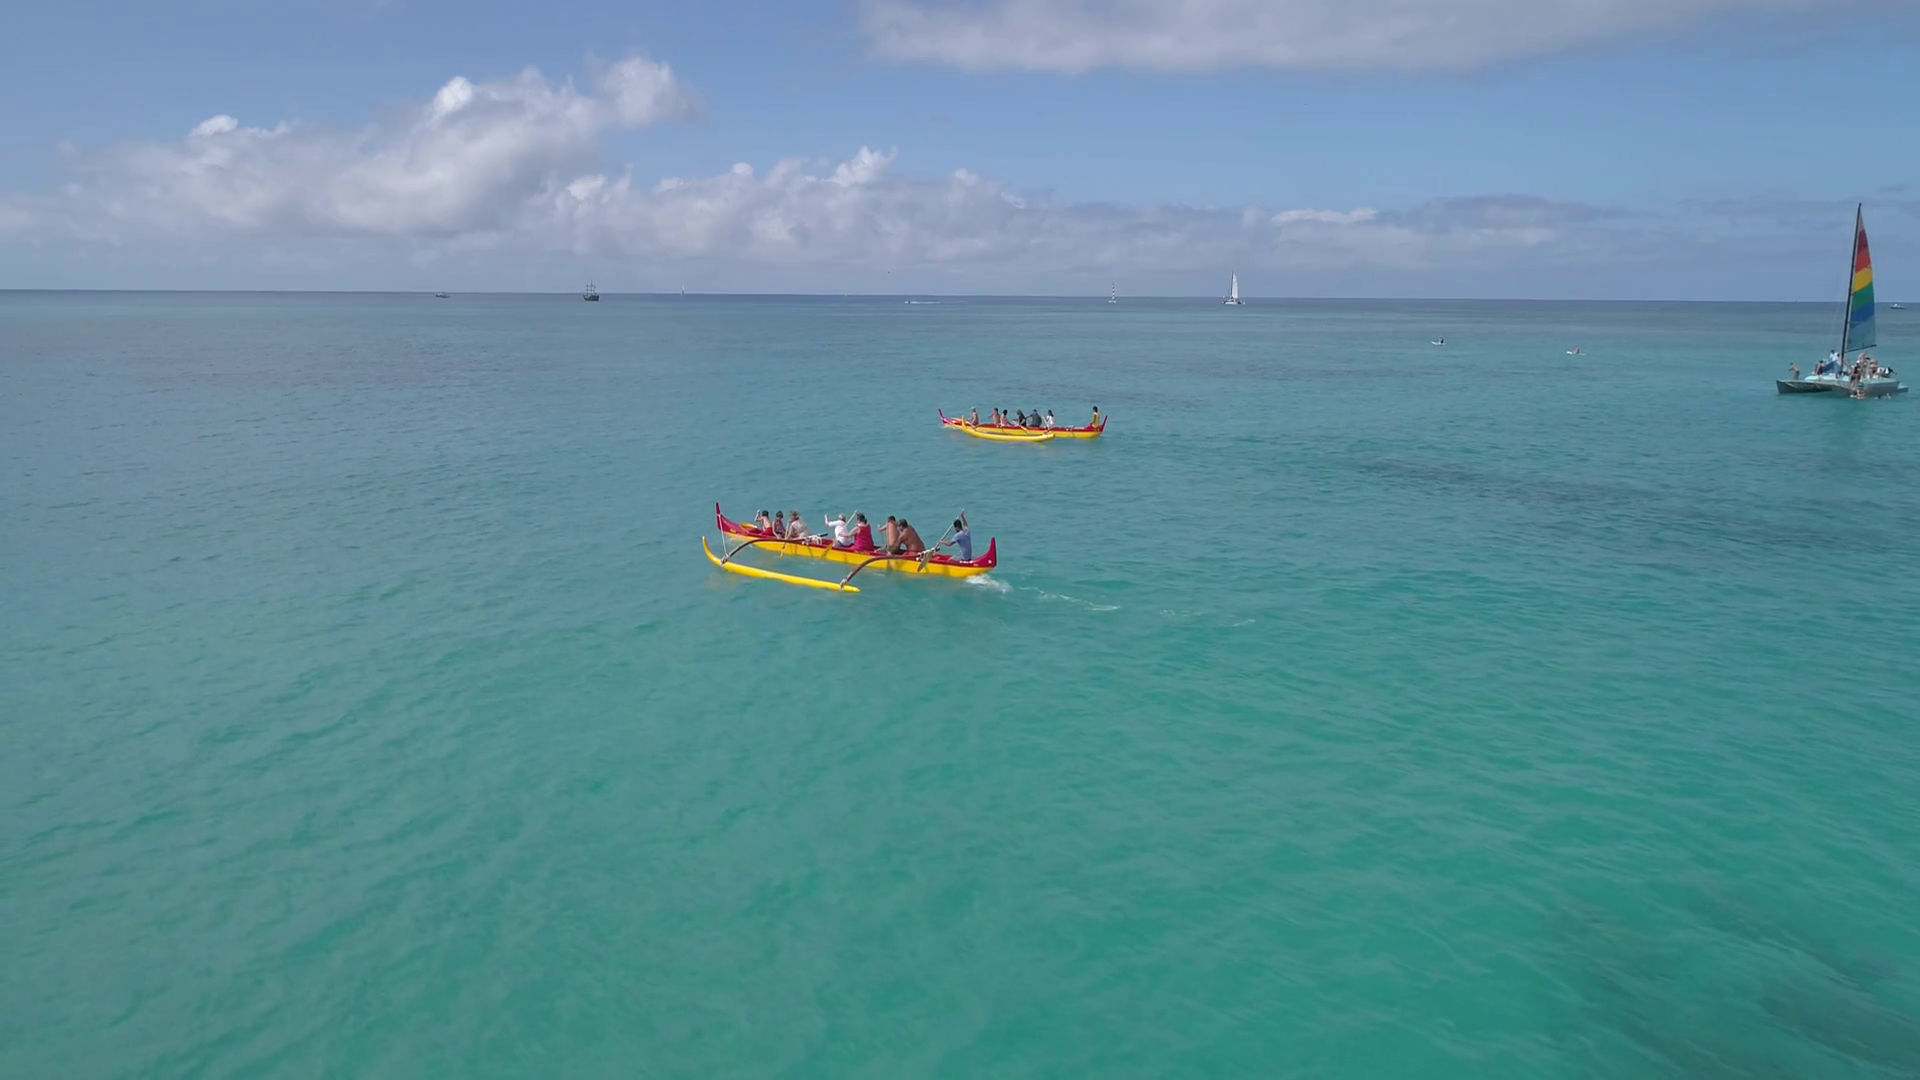 Slow Motion Aerial Video Of Outrigger Canoes In Waikiki Hawaii 1920x1080